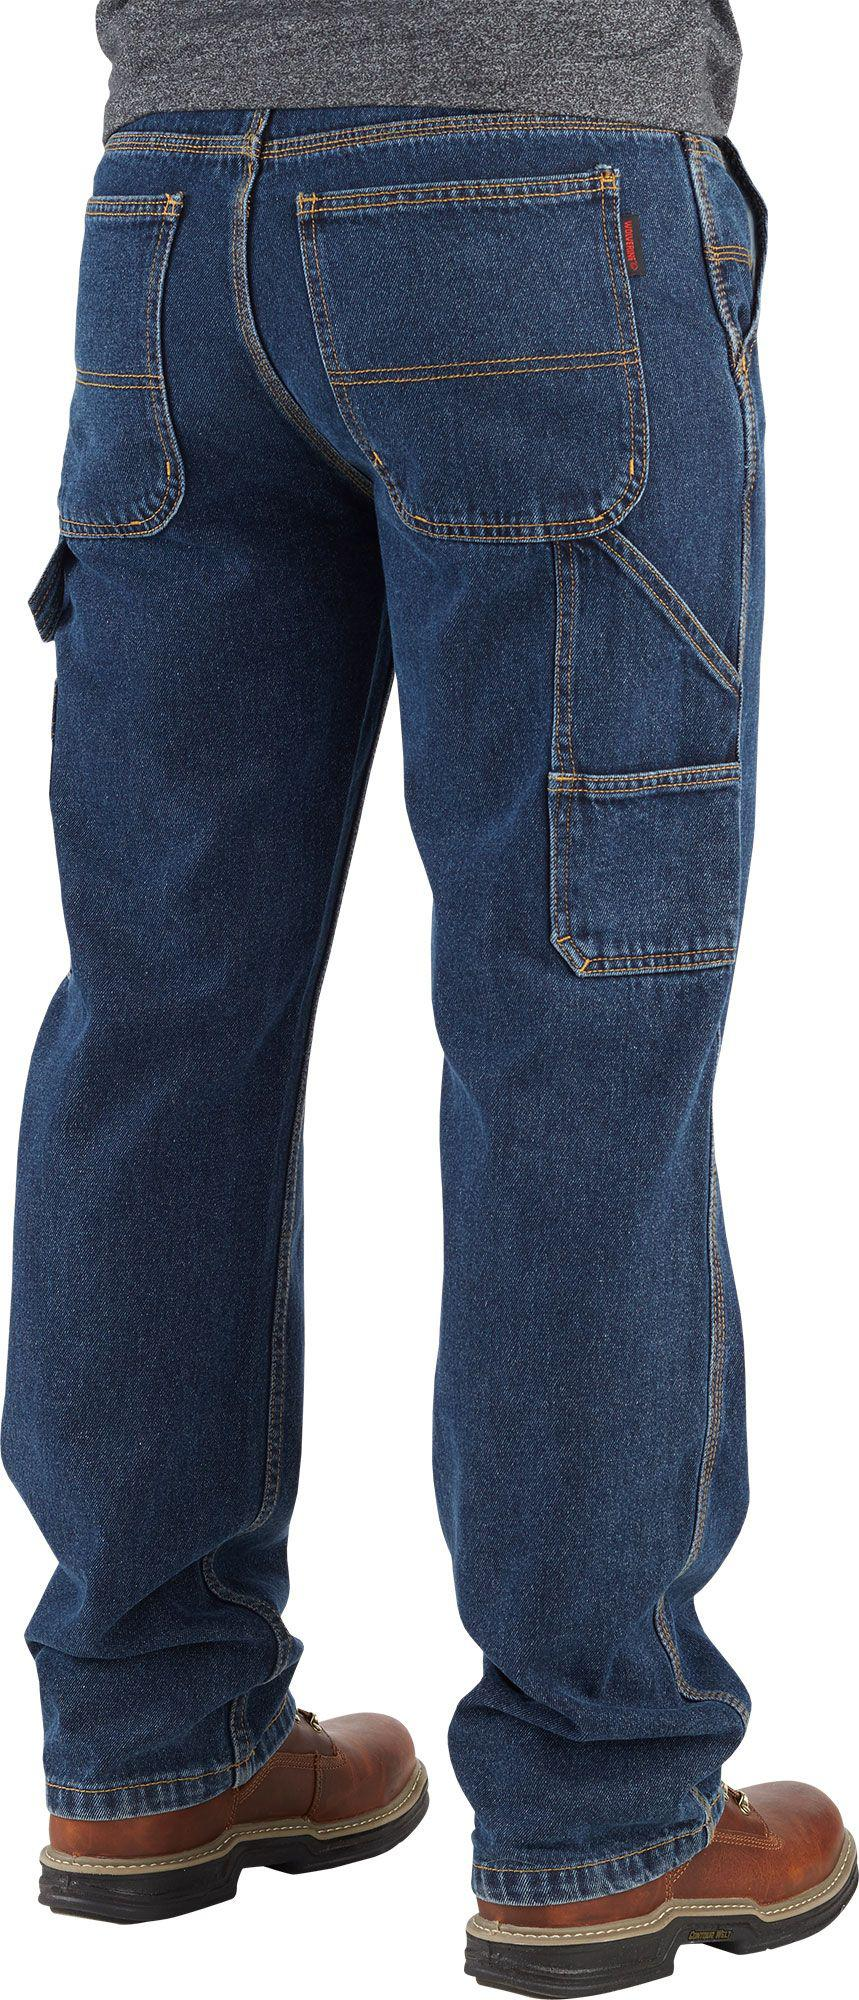 c866a7803bfd Wolverine - Blue Hammer Loop Pants for Men - Lyst. View fullscreen